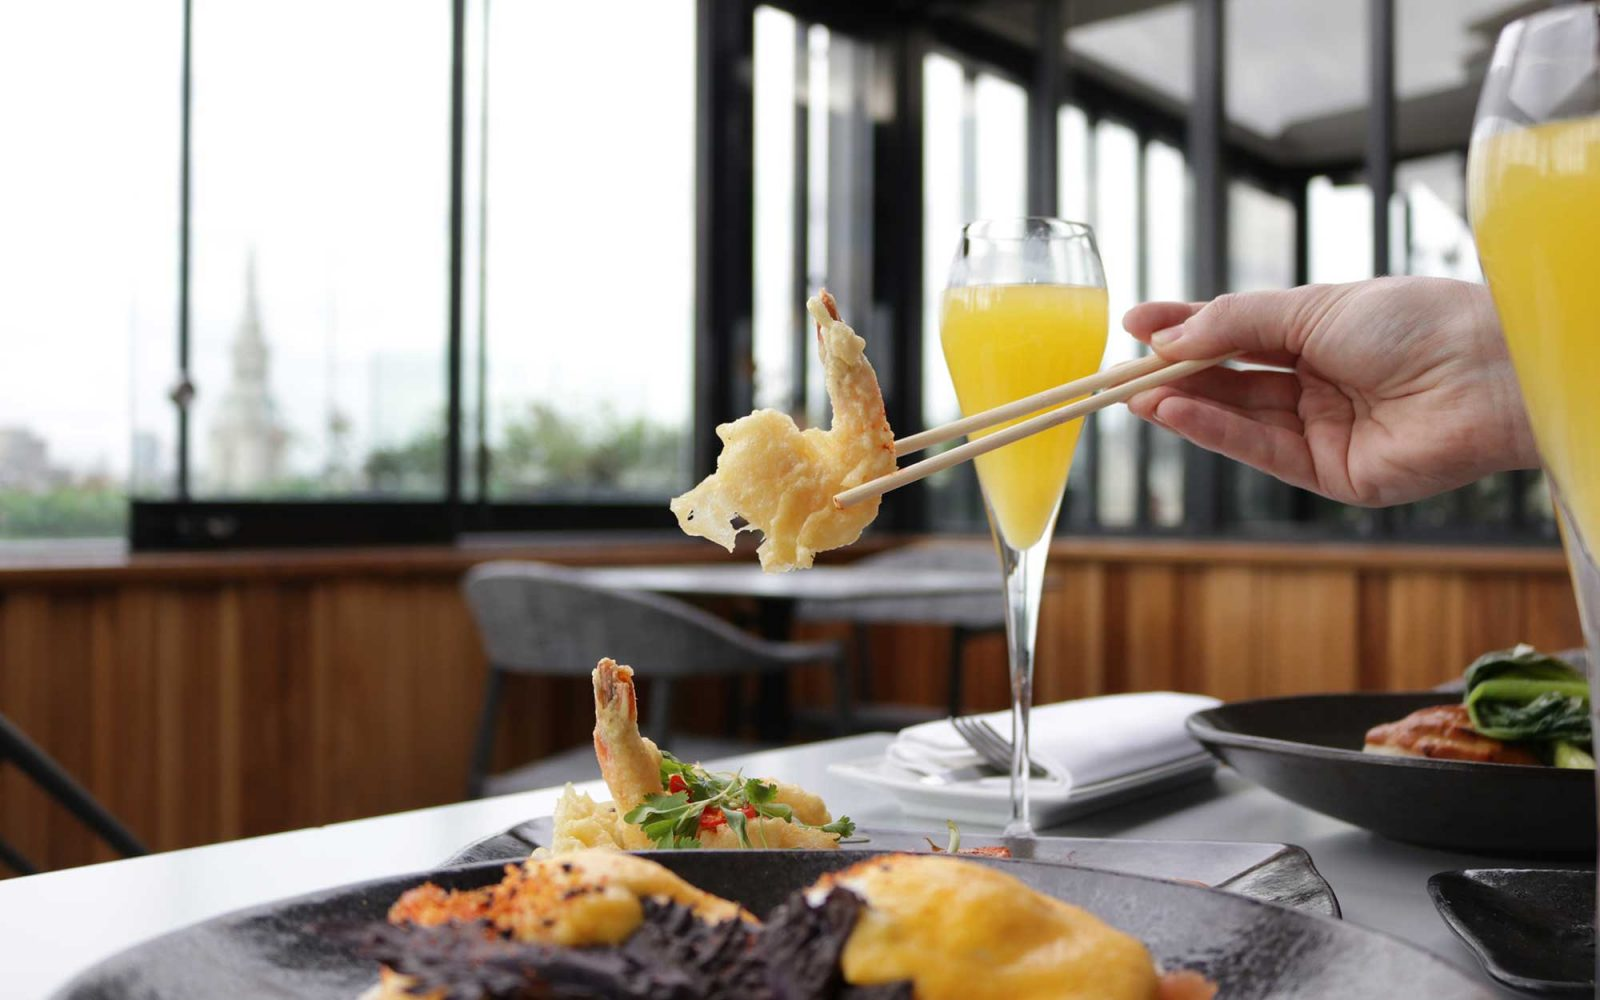 The Rooftop Brunch - Tempura